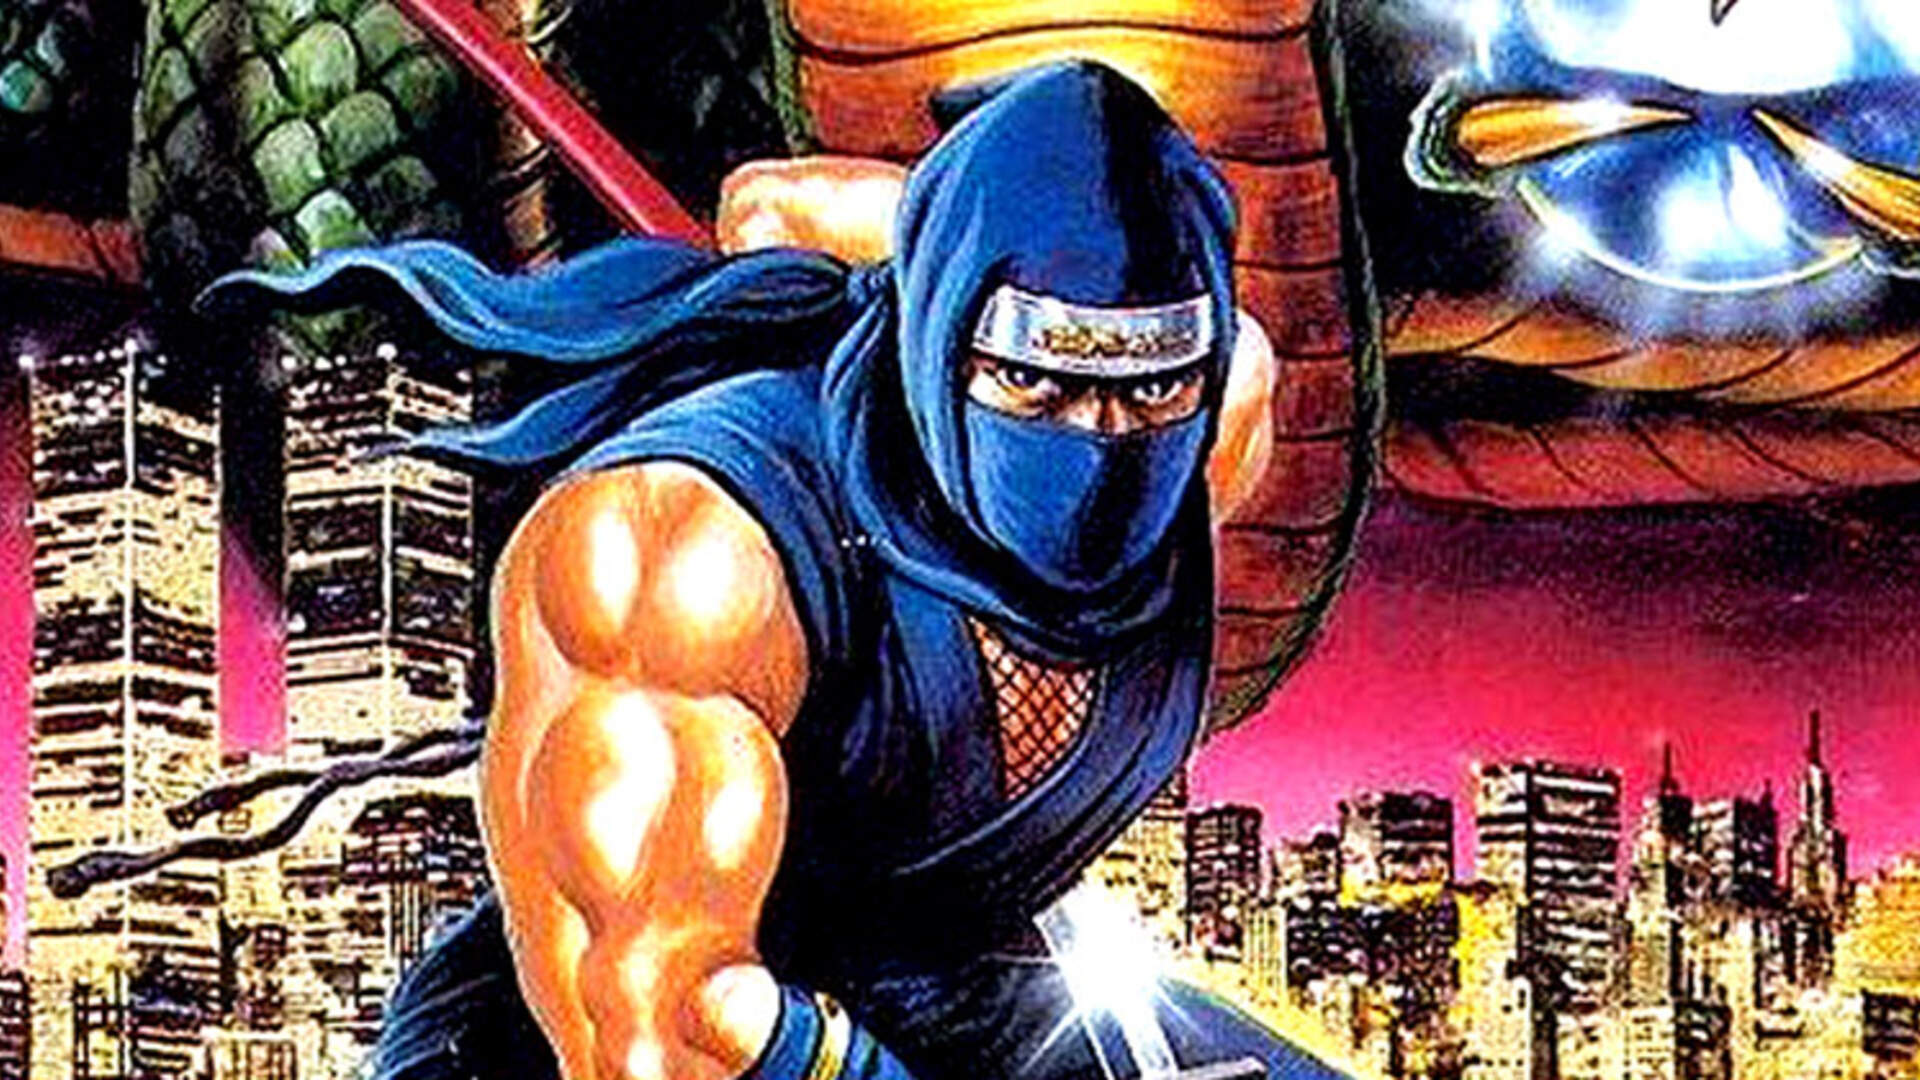 Virtual Spotlight Ninja Gaiden Ii The Dark Sword Of Chaos Usgamer